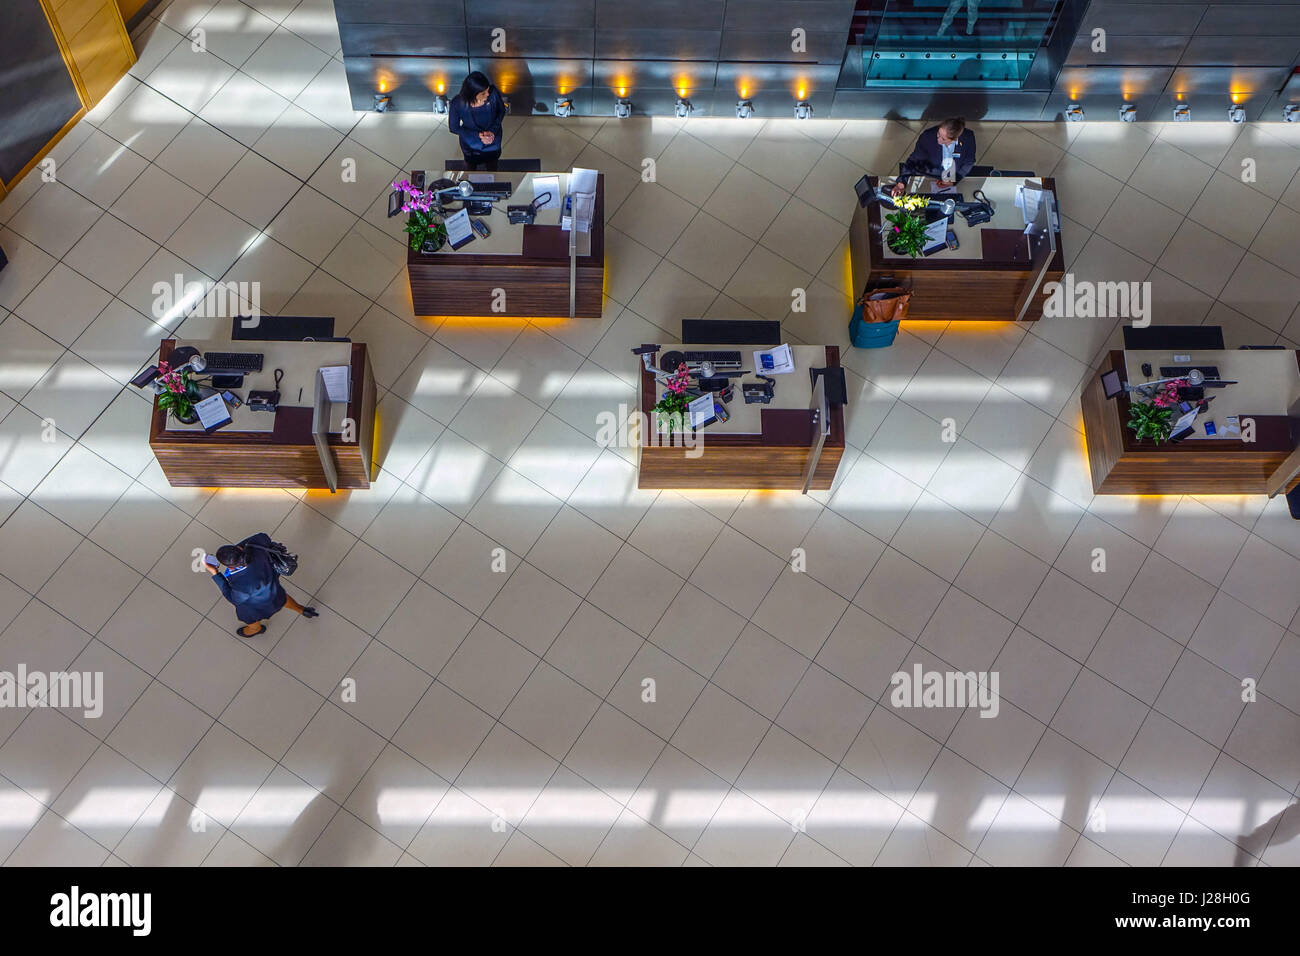 Reception desk area at Radisson Blu Airport hotel at London Stansted airport seen from above Stock Photo